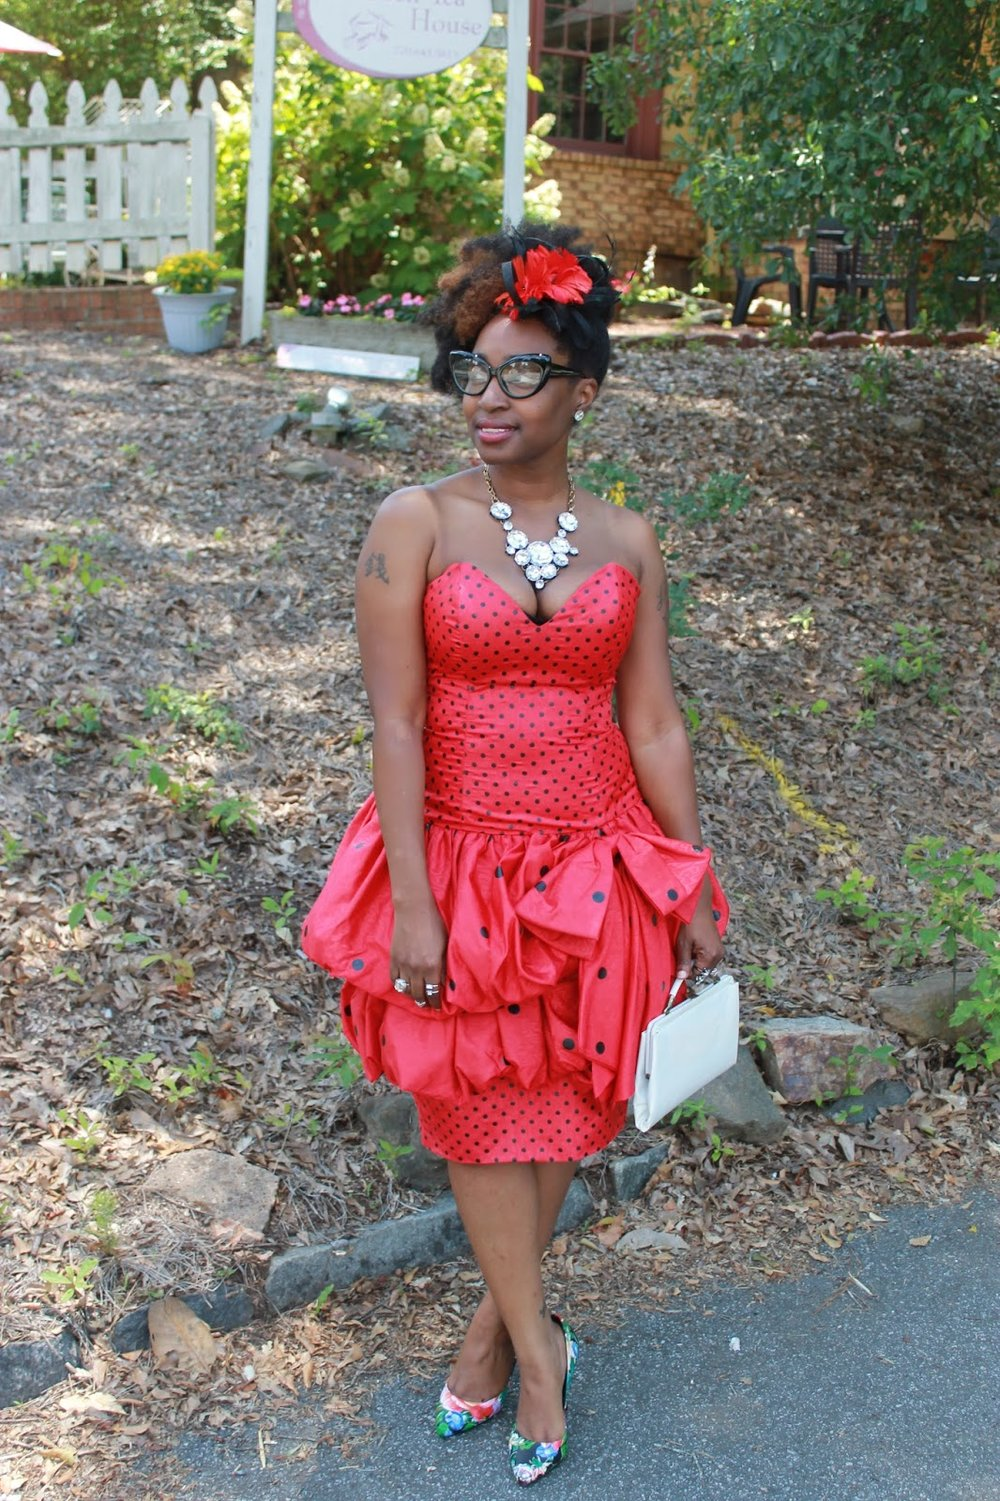 Atlanta style blogger, style blogger, blogger, Atlanta blogger, street style, vintage fashion, polka dot dress, peplum dress, vintage, mixed prints, high tea party